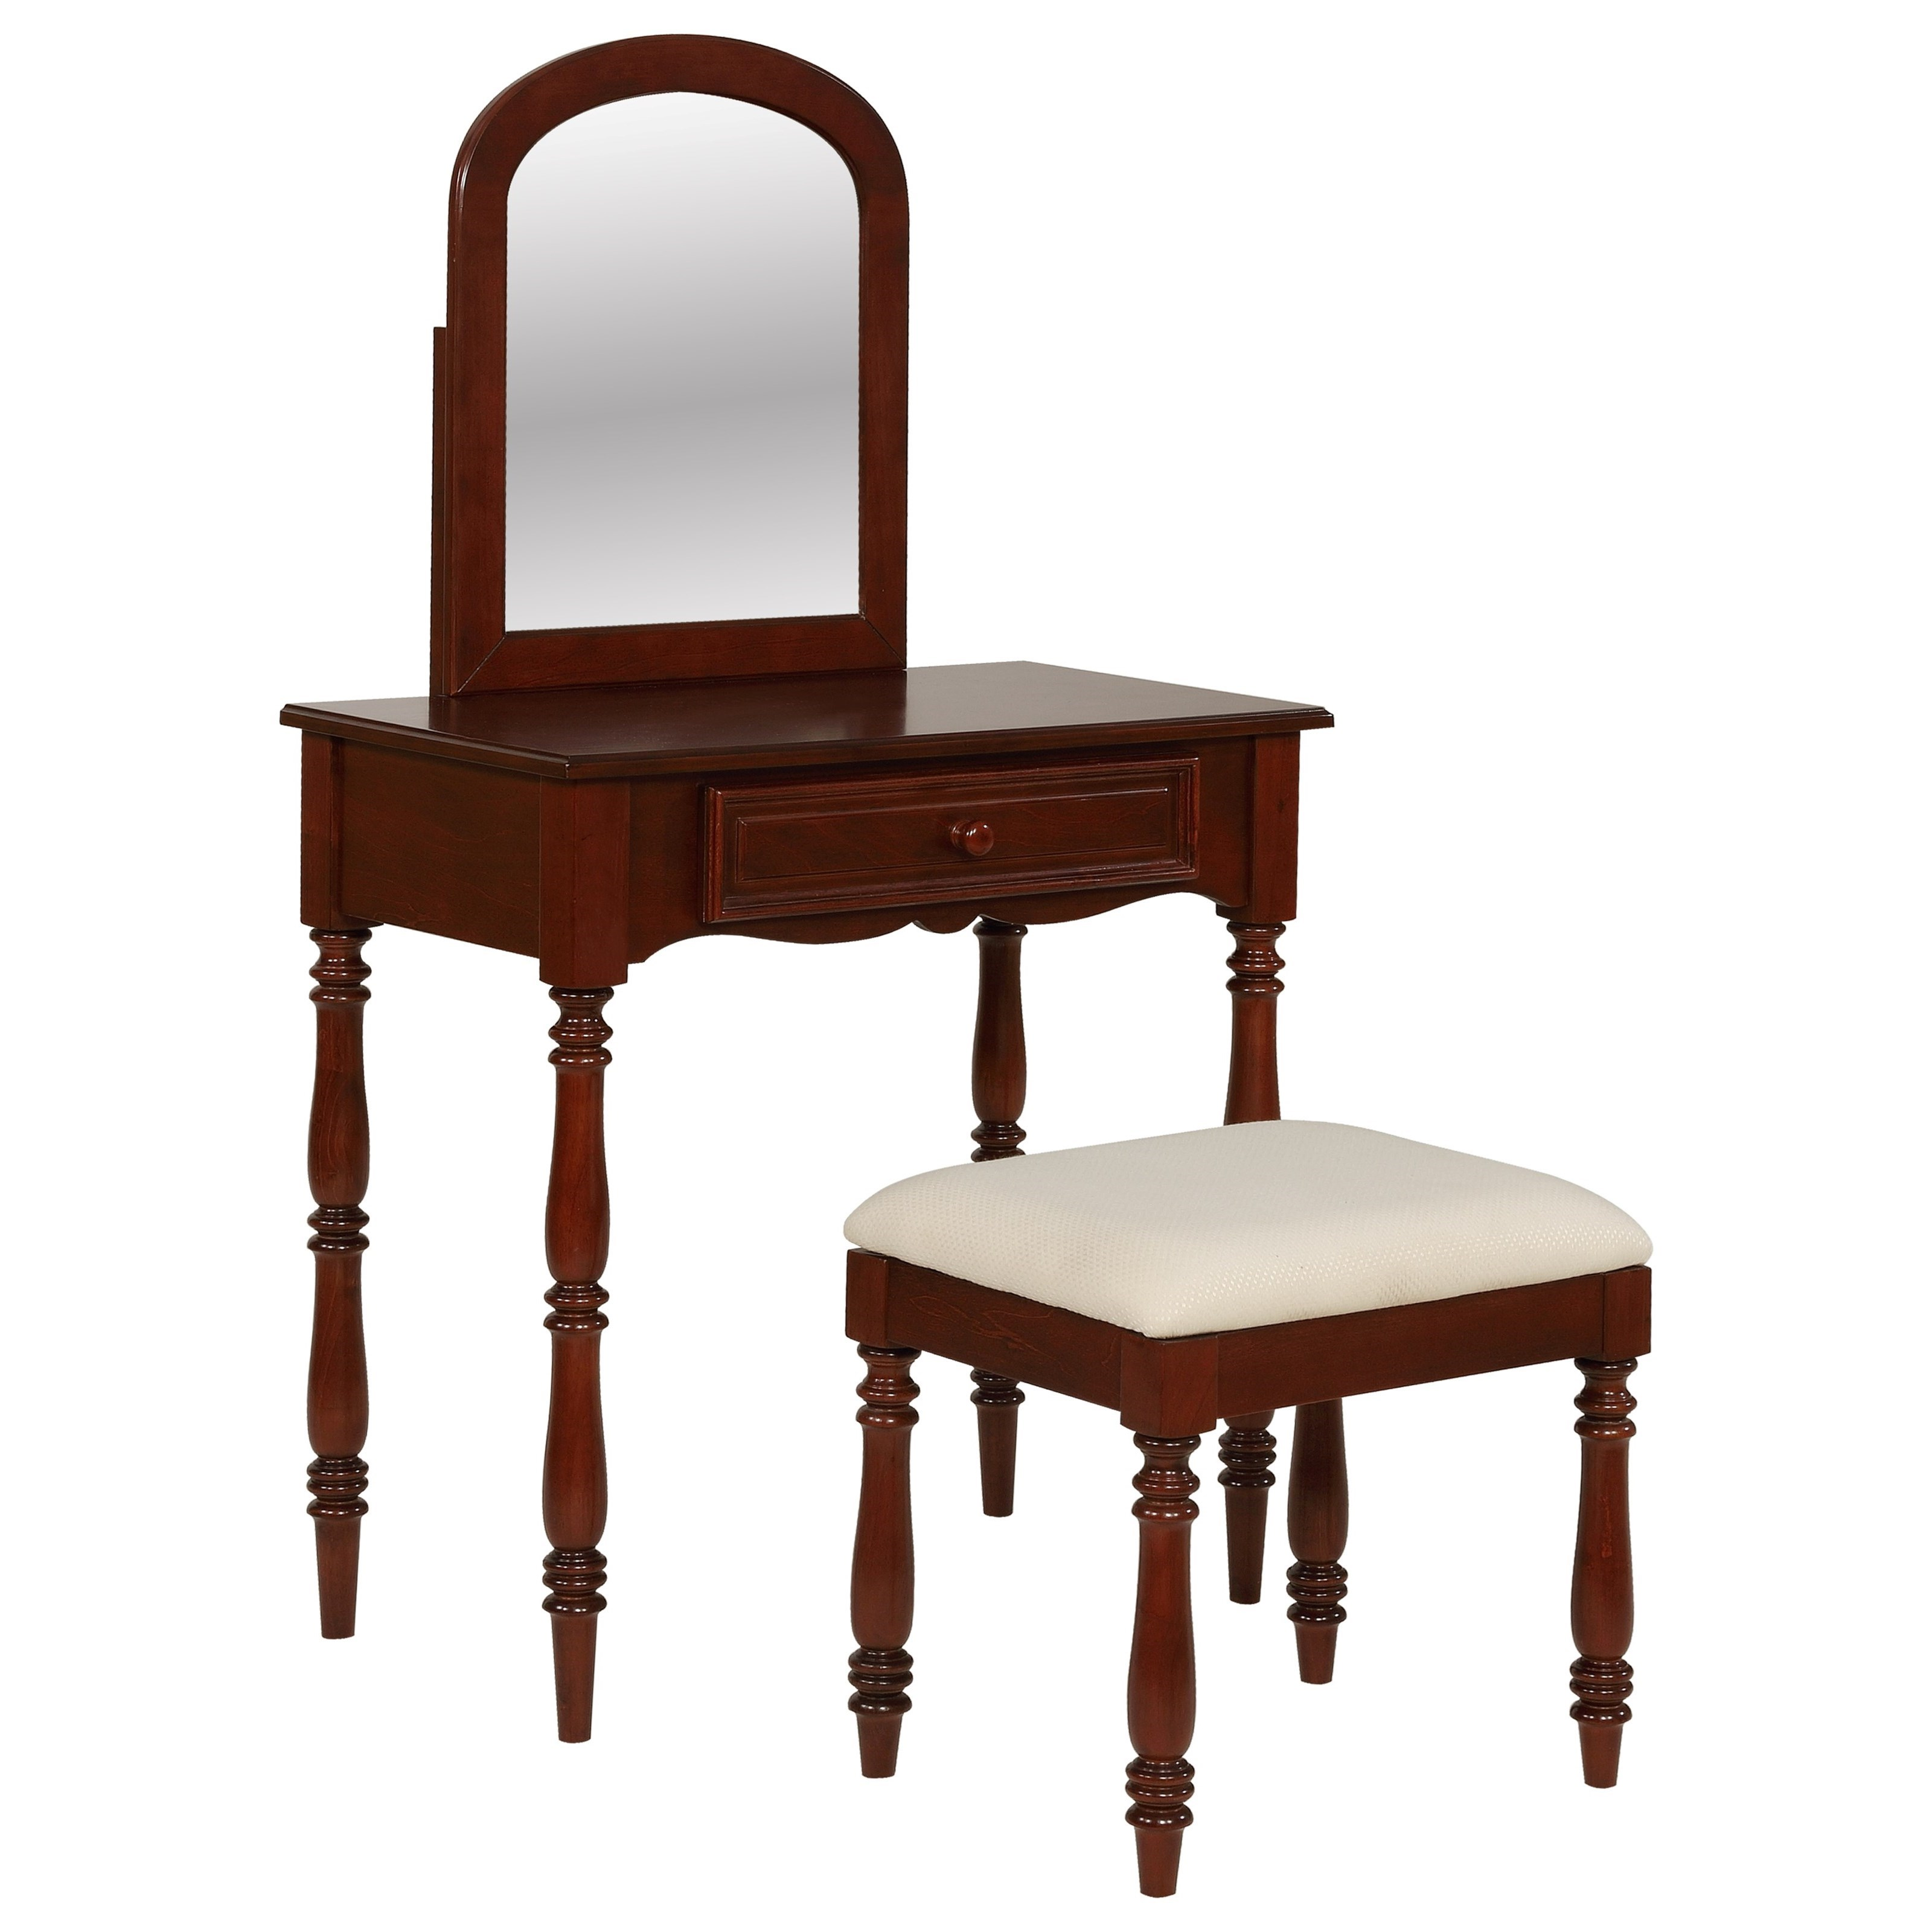 Accent Furniture Chadwick Vanity with Stool by Powell at Lynn's Furniture & Mattress